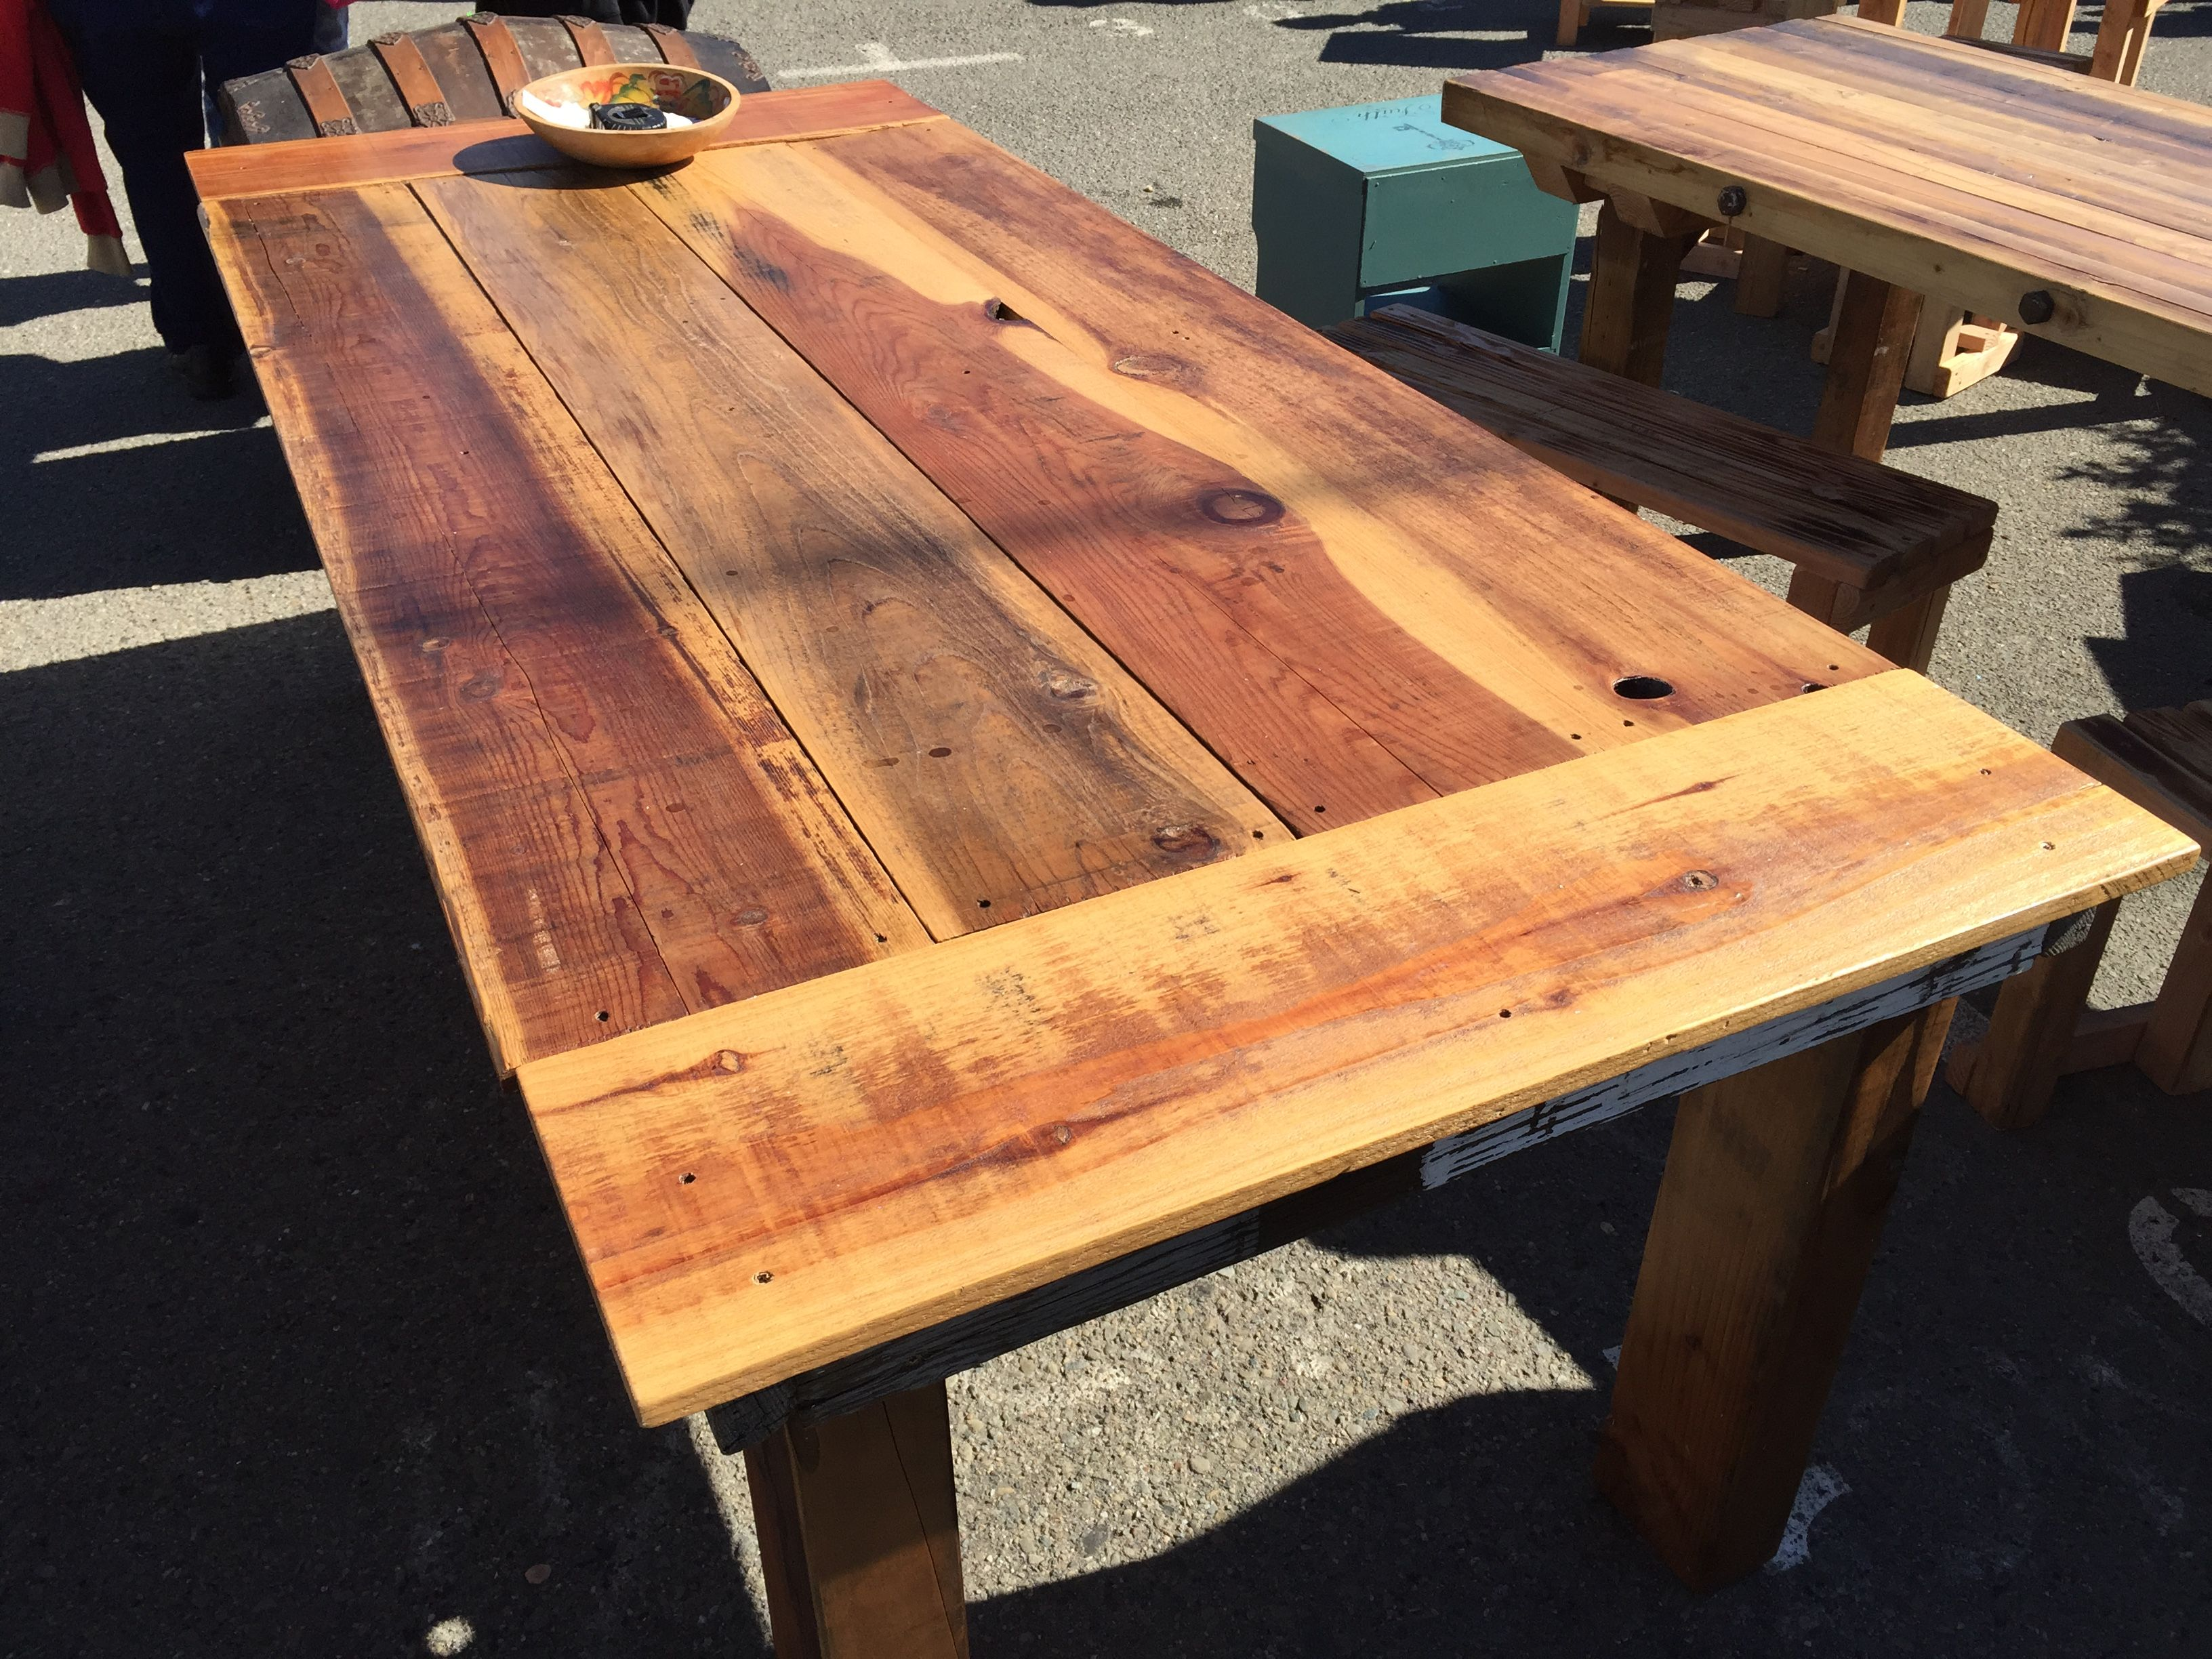 Charming 1 Of A Kind, Handmade Indoor/outdoor Dining Table, 100% Reclaimed Wood, By  The 1 And Only Vinceu0027s Wood Work. Seen Today At The Treasure Island Flea In  San ...